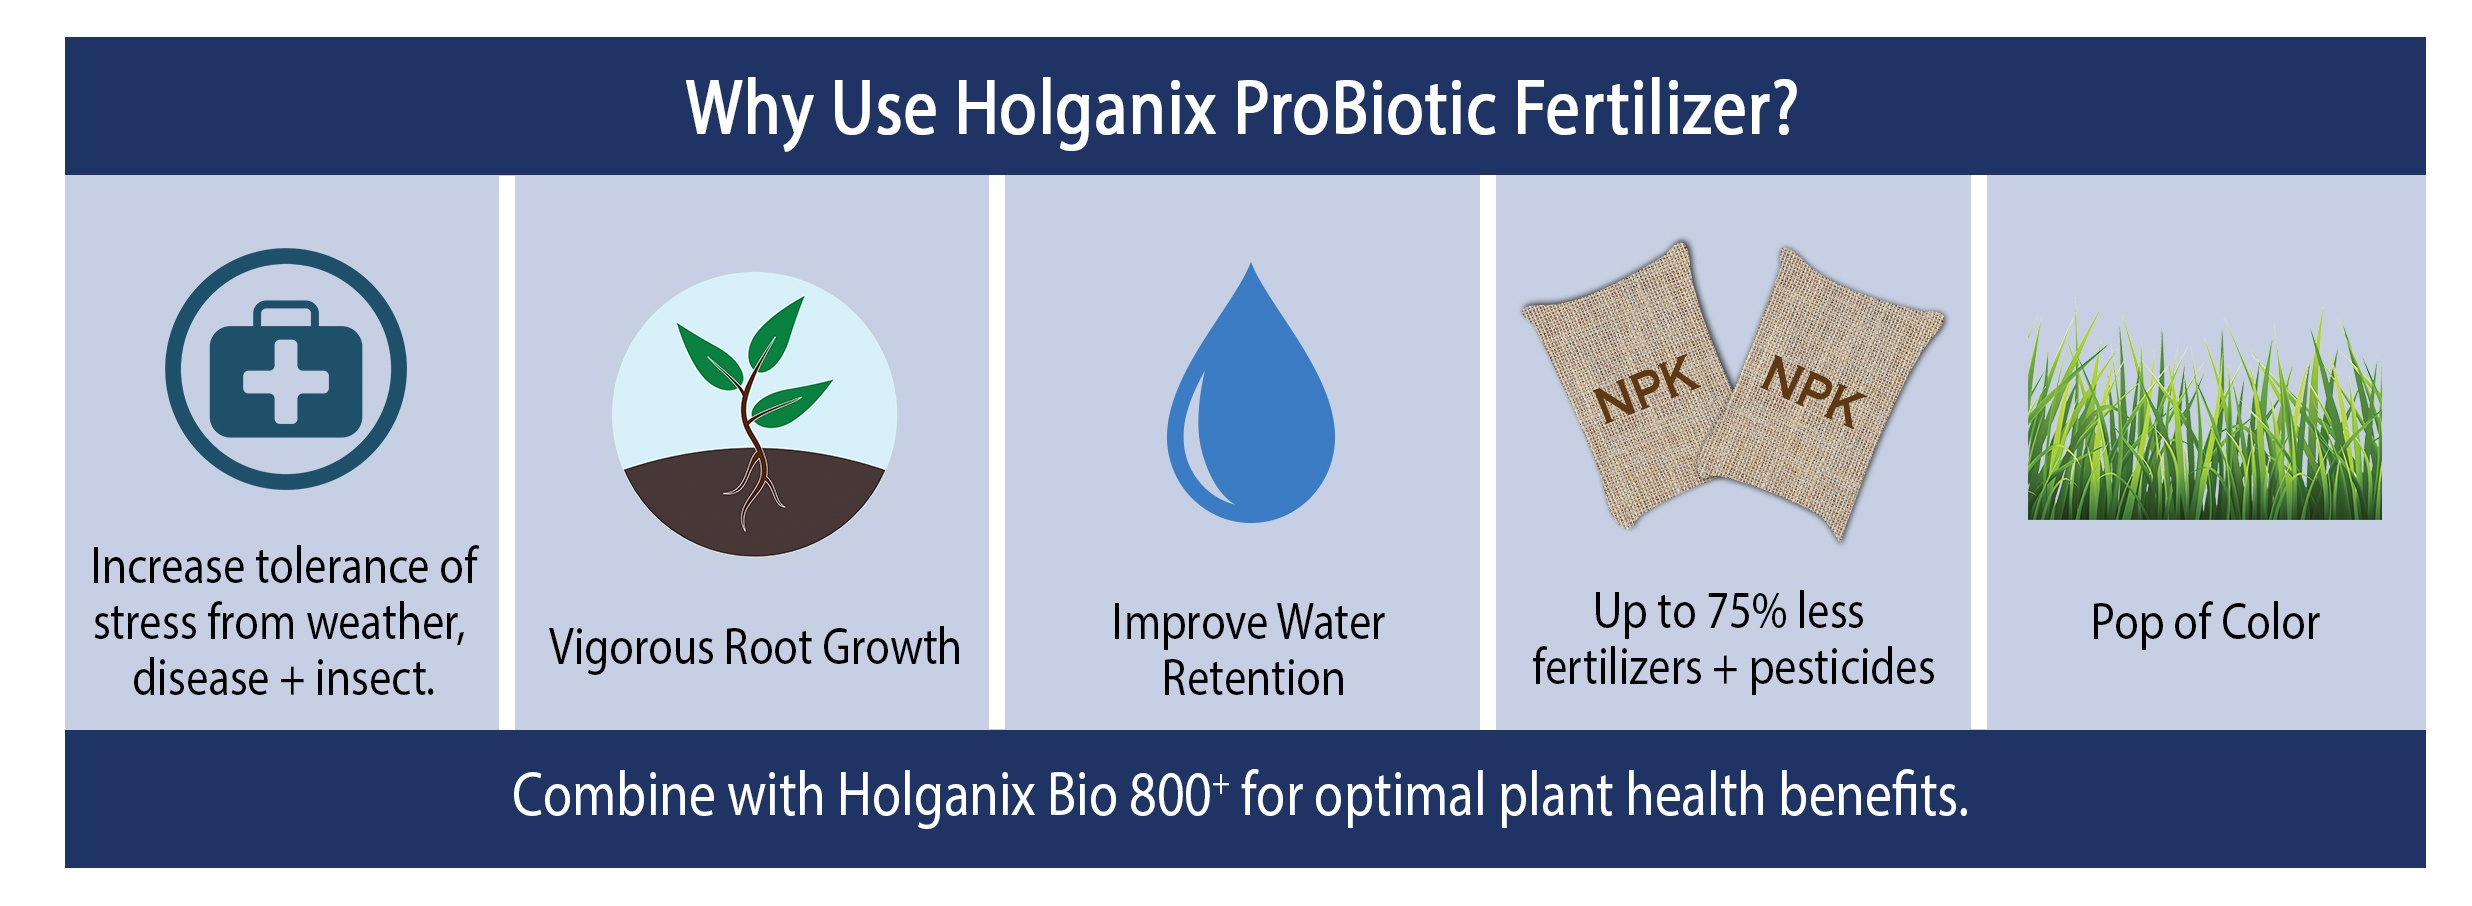 Why use probiotic fert.jpg